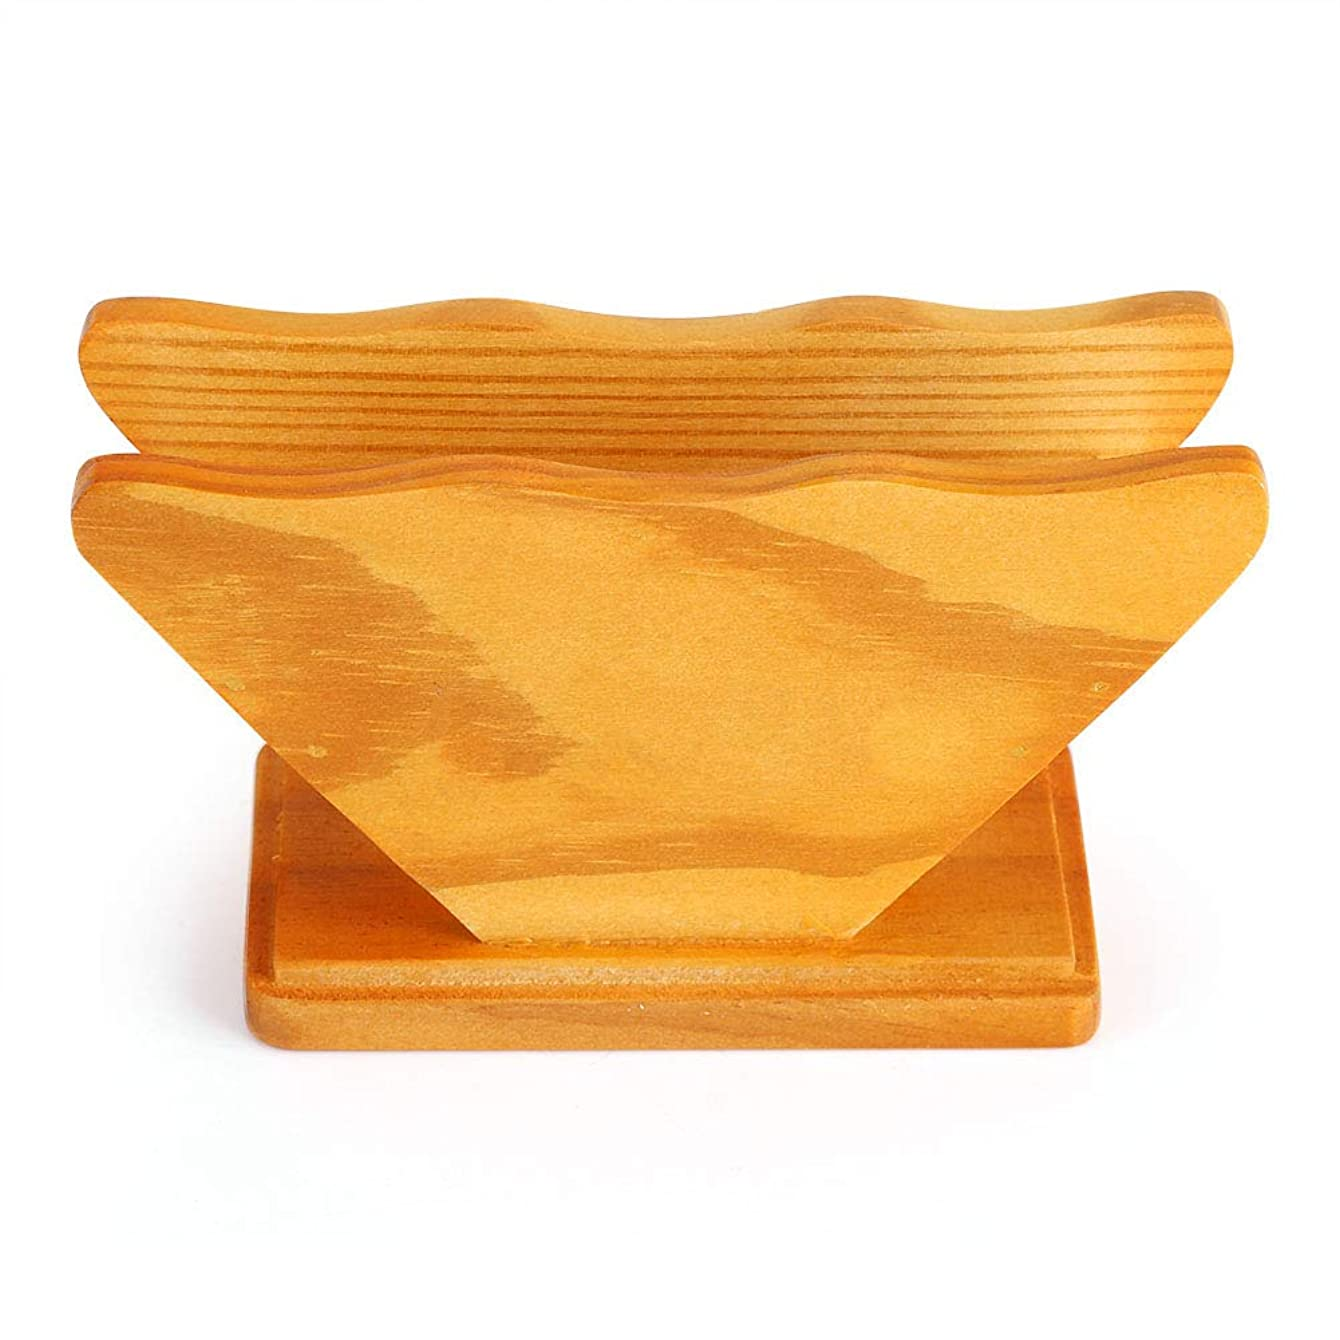 Wooden Coffee Filter Paper Renewable Natural Resource Filter Paper Foldable Wooden Stand Storage Box Holder